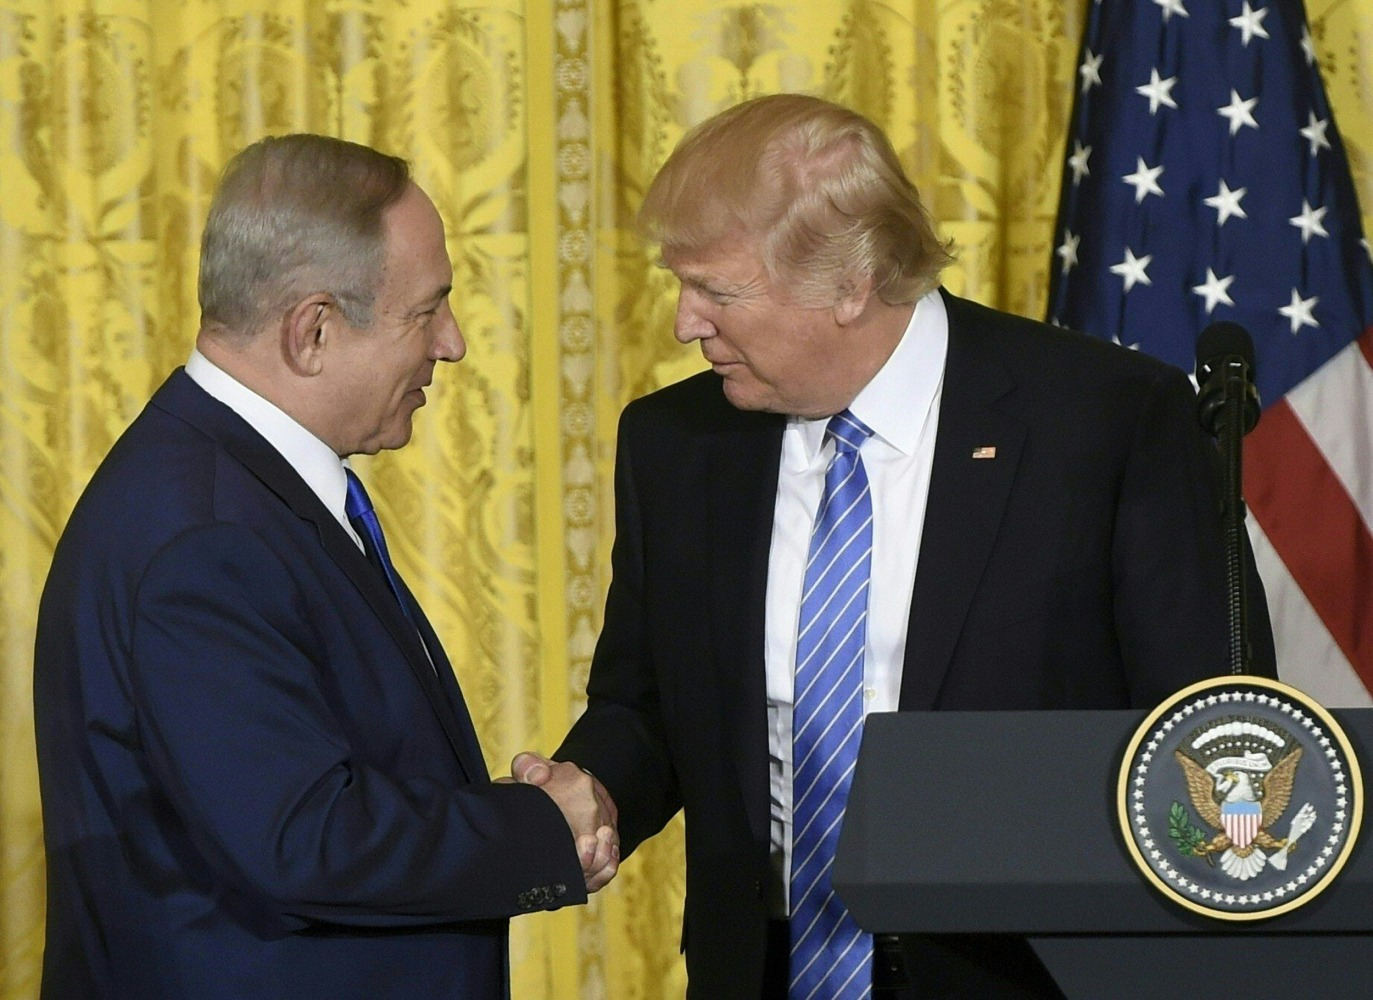 Trump doesn't plan to use Israel trip to announce embassy move